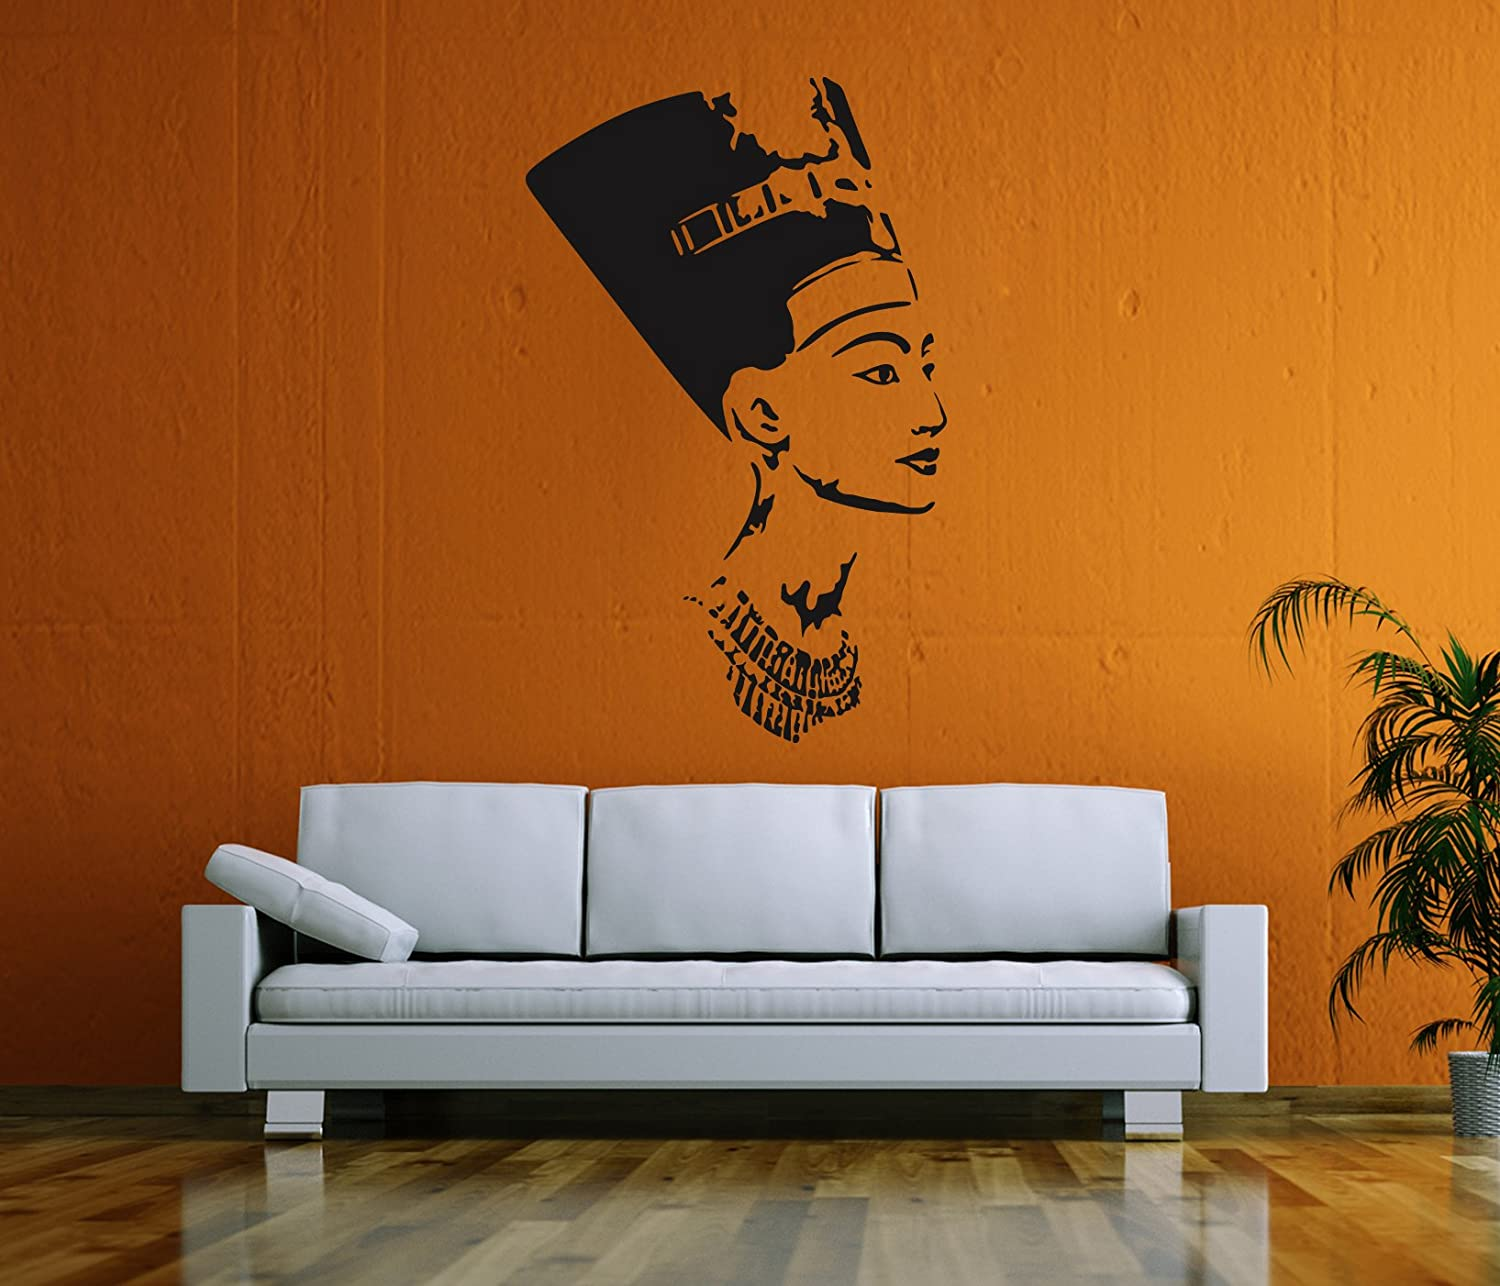 Amazon ik58 wall decal sticker room decor wall art mural amazon ik58 wall decal sticker room decor wall art mural profile of the egyptian queen nefertiti living room bedroom interior home kitchen amipublicfo Gallery